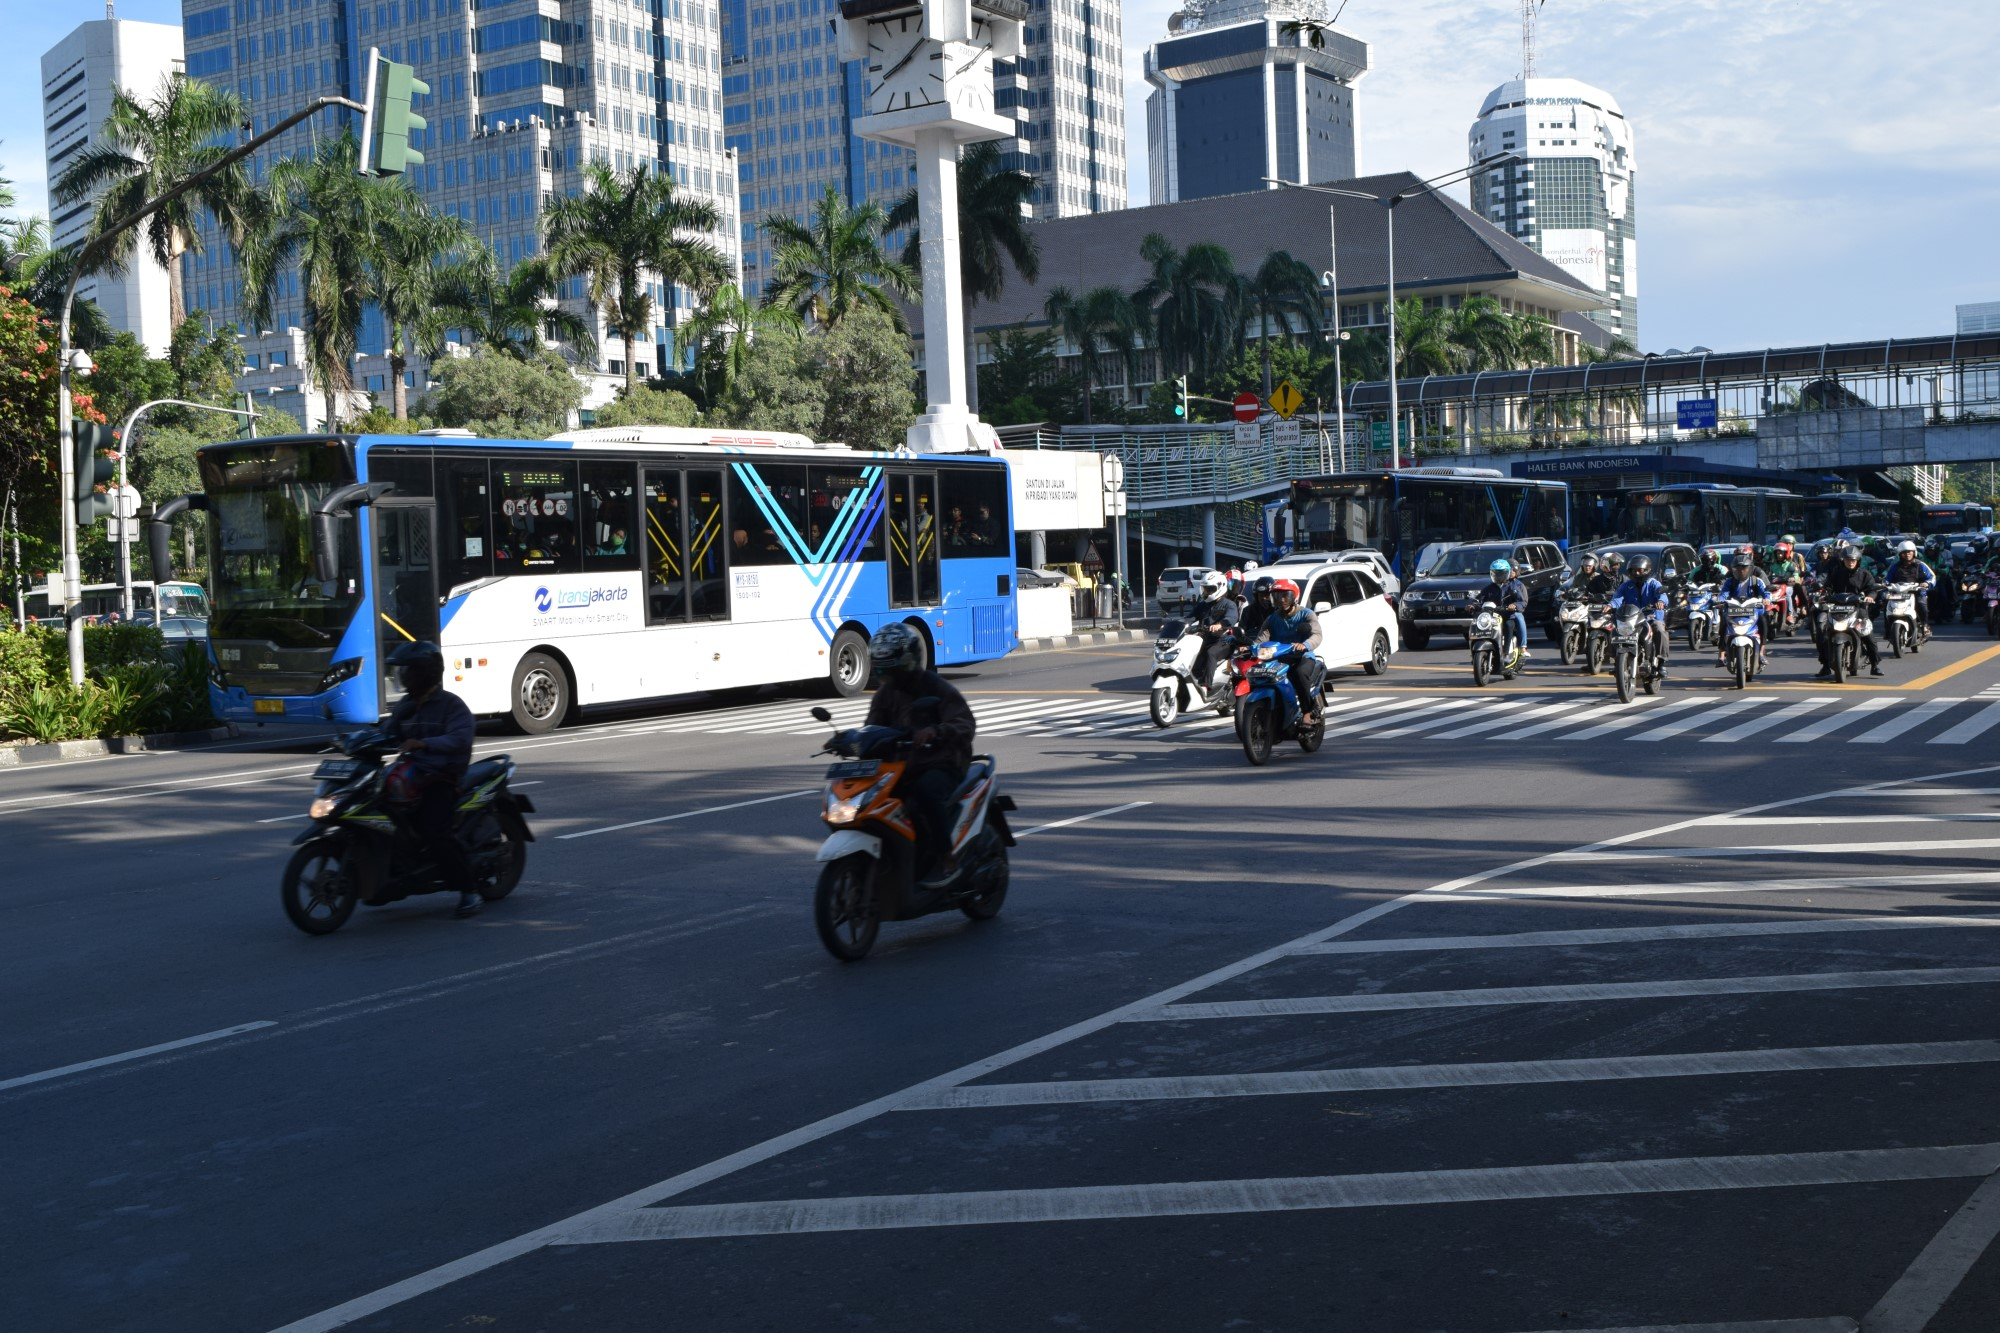 Buses in Indonesia